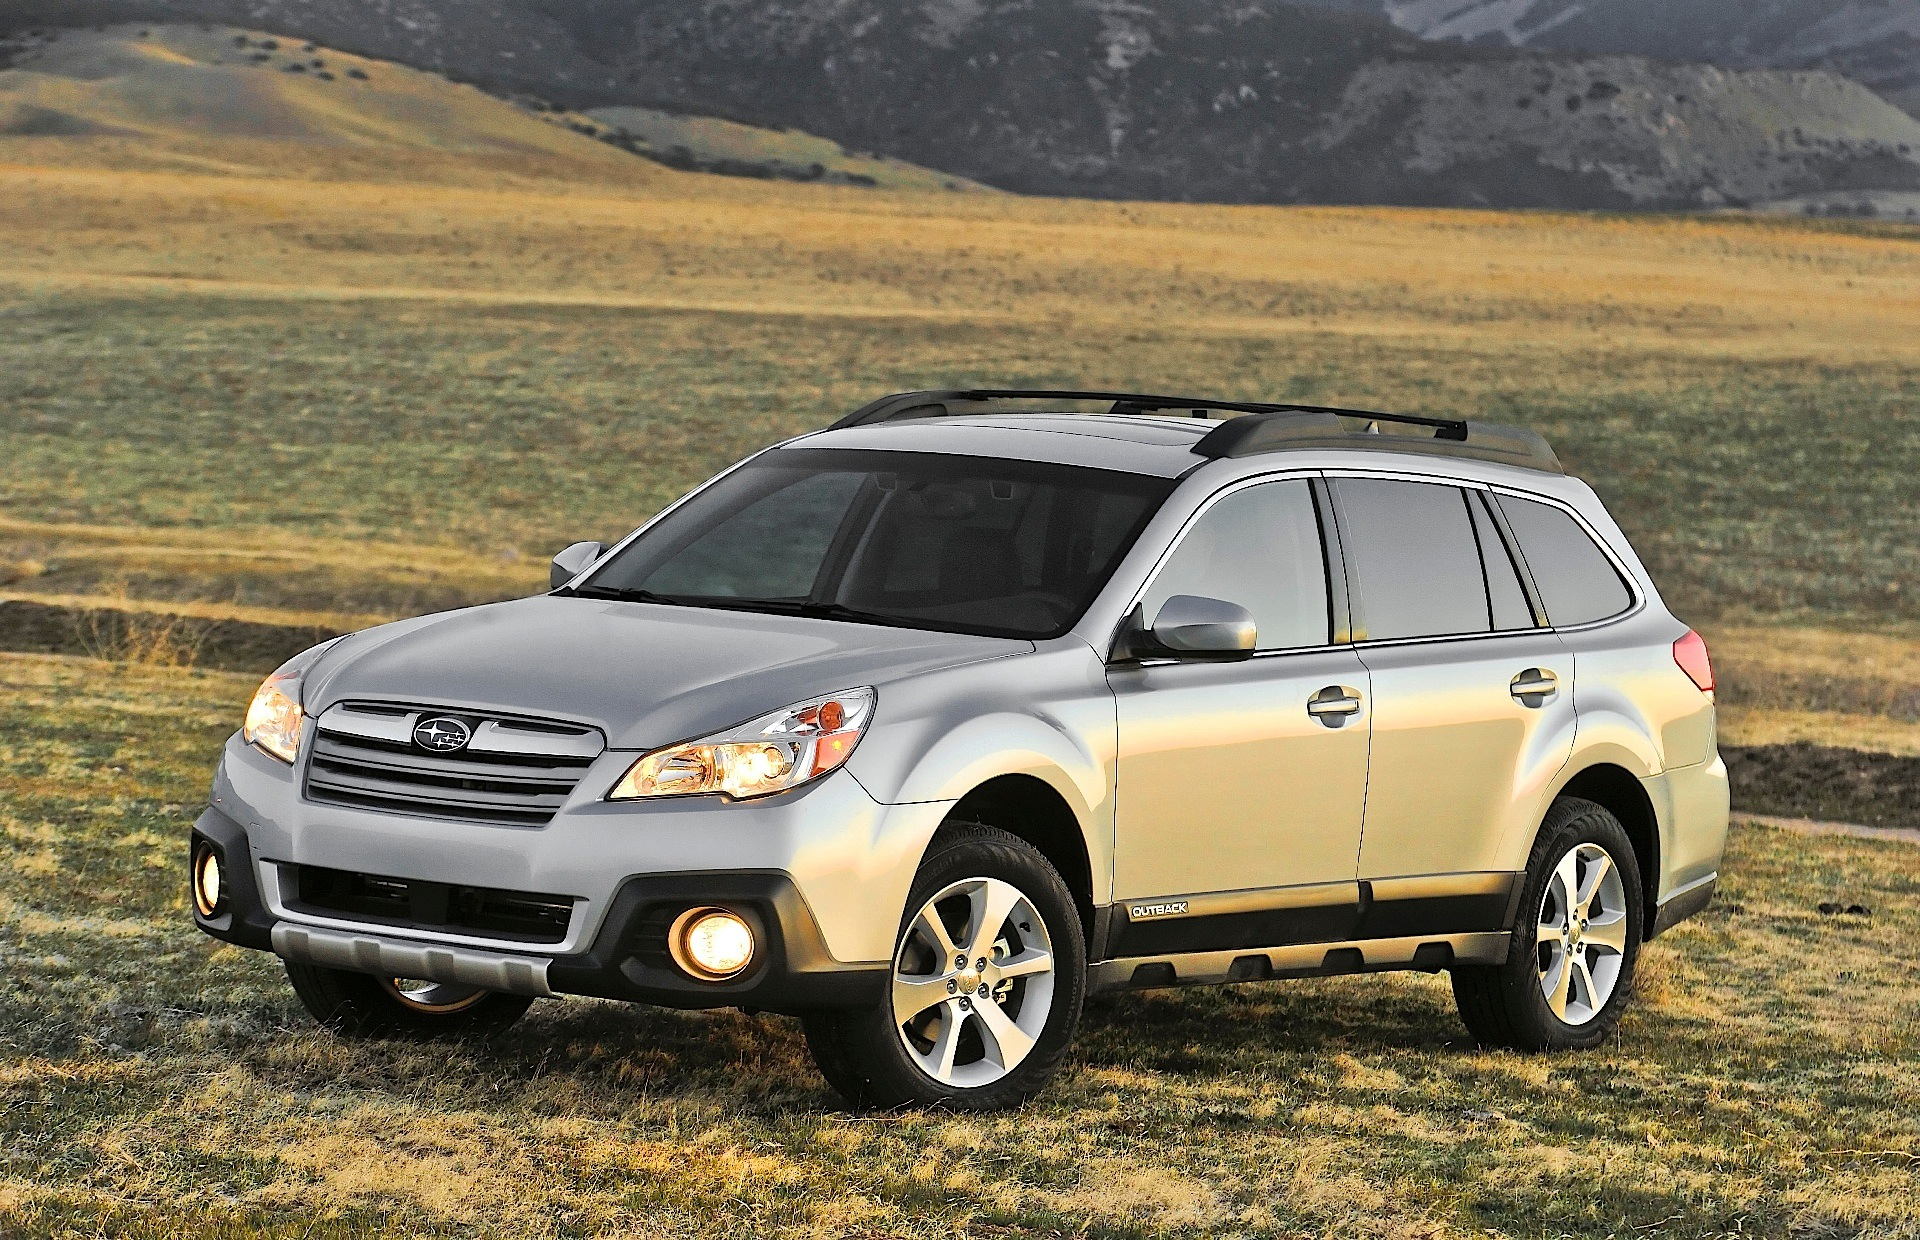 subaru outback specs 2009 2010 2011 2012 2013 2014 autoevolution. Black Bedroom Furniture Sets. Home Design Ideas